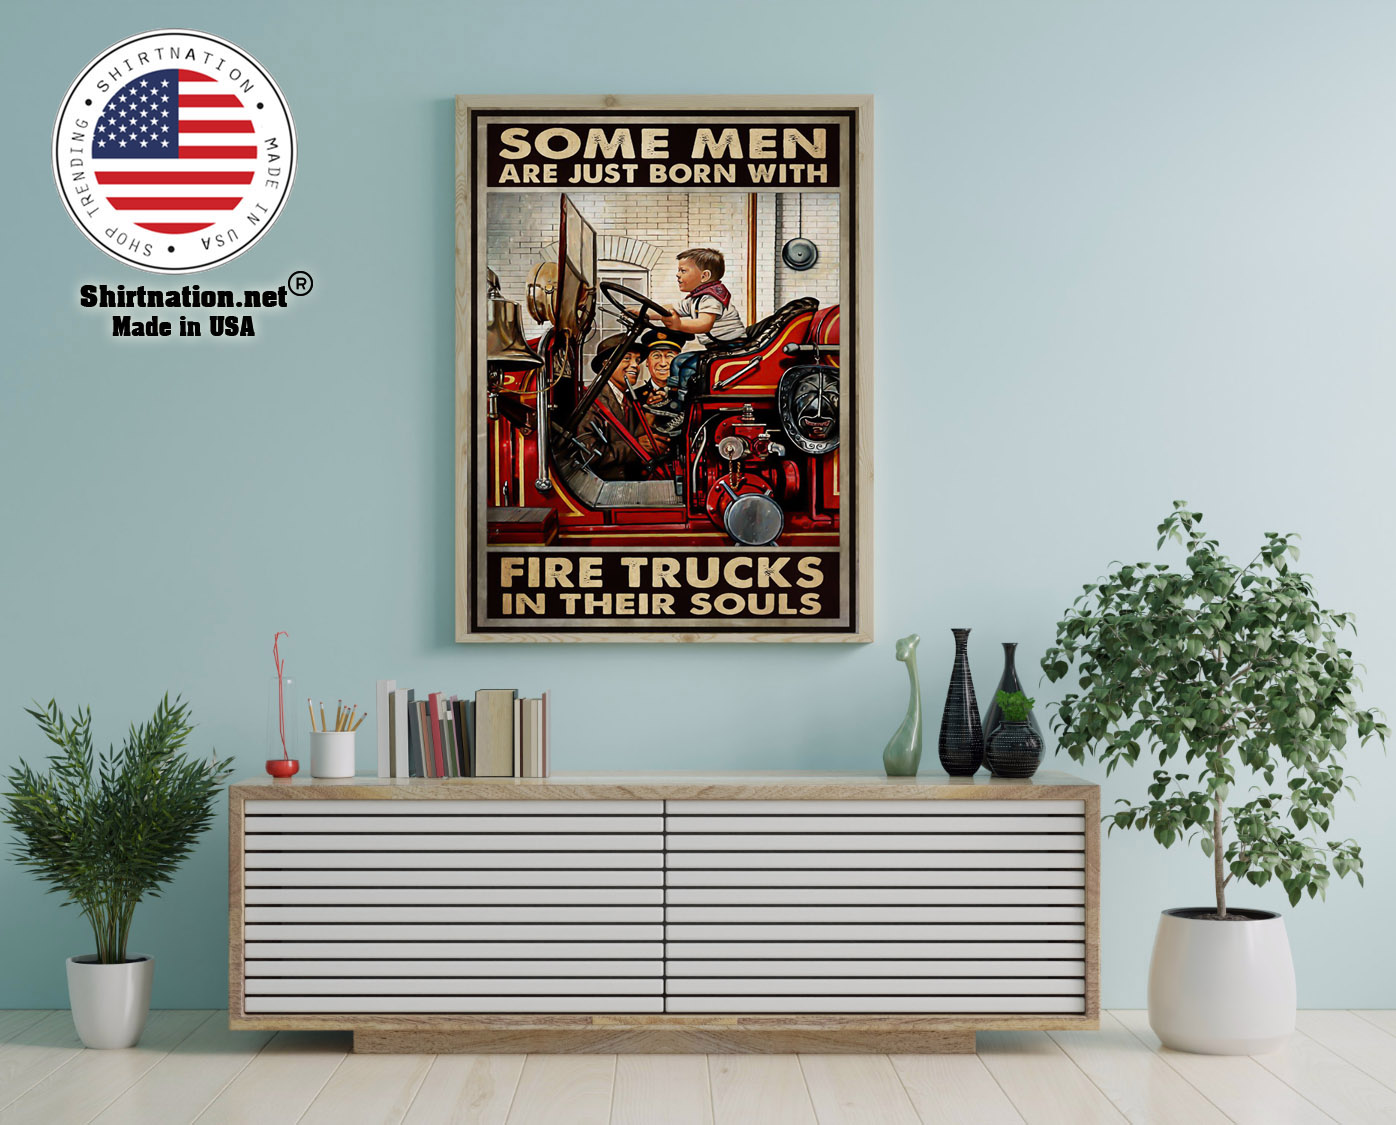 Some men are just born with fire trucks in their souls poster 12